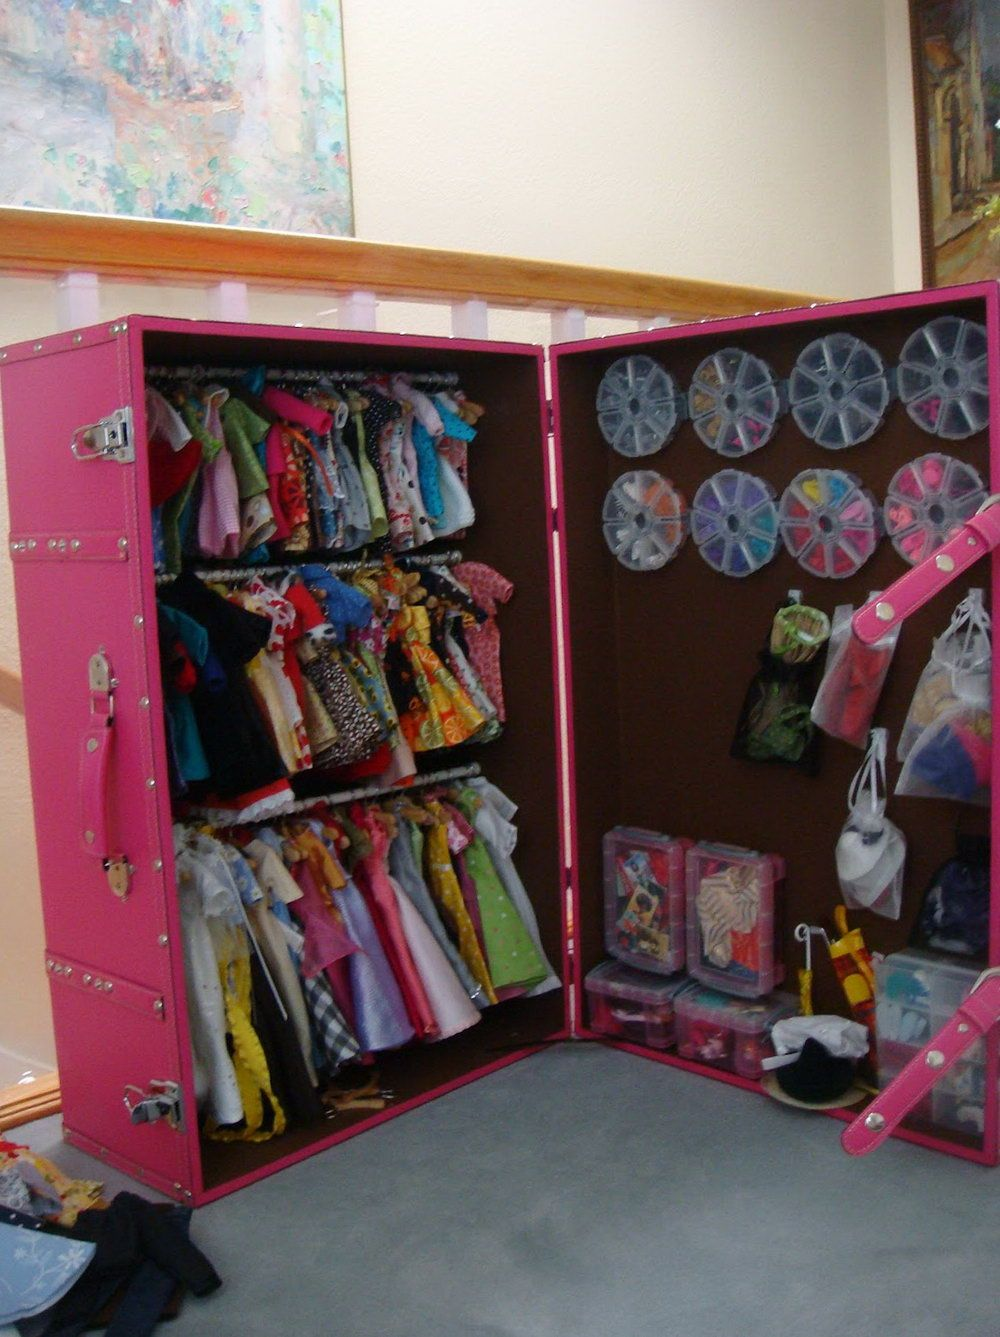 Diy Barbie Clothes Closet Diy Barbie Furniture Diy Barbie Clothes Diy Clothes Storage